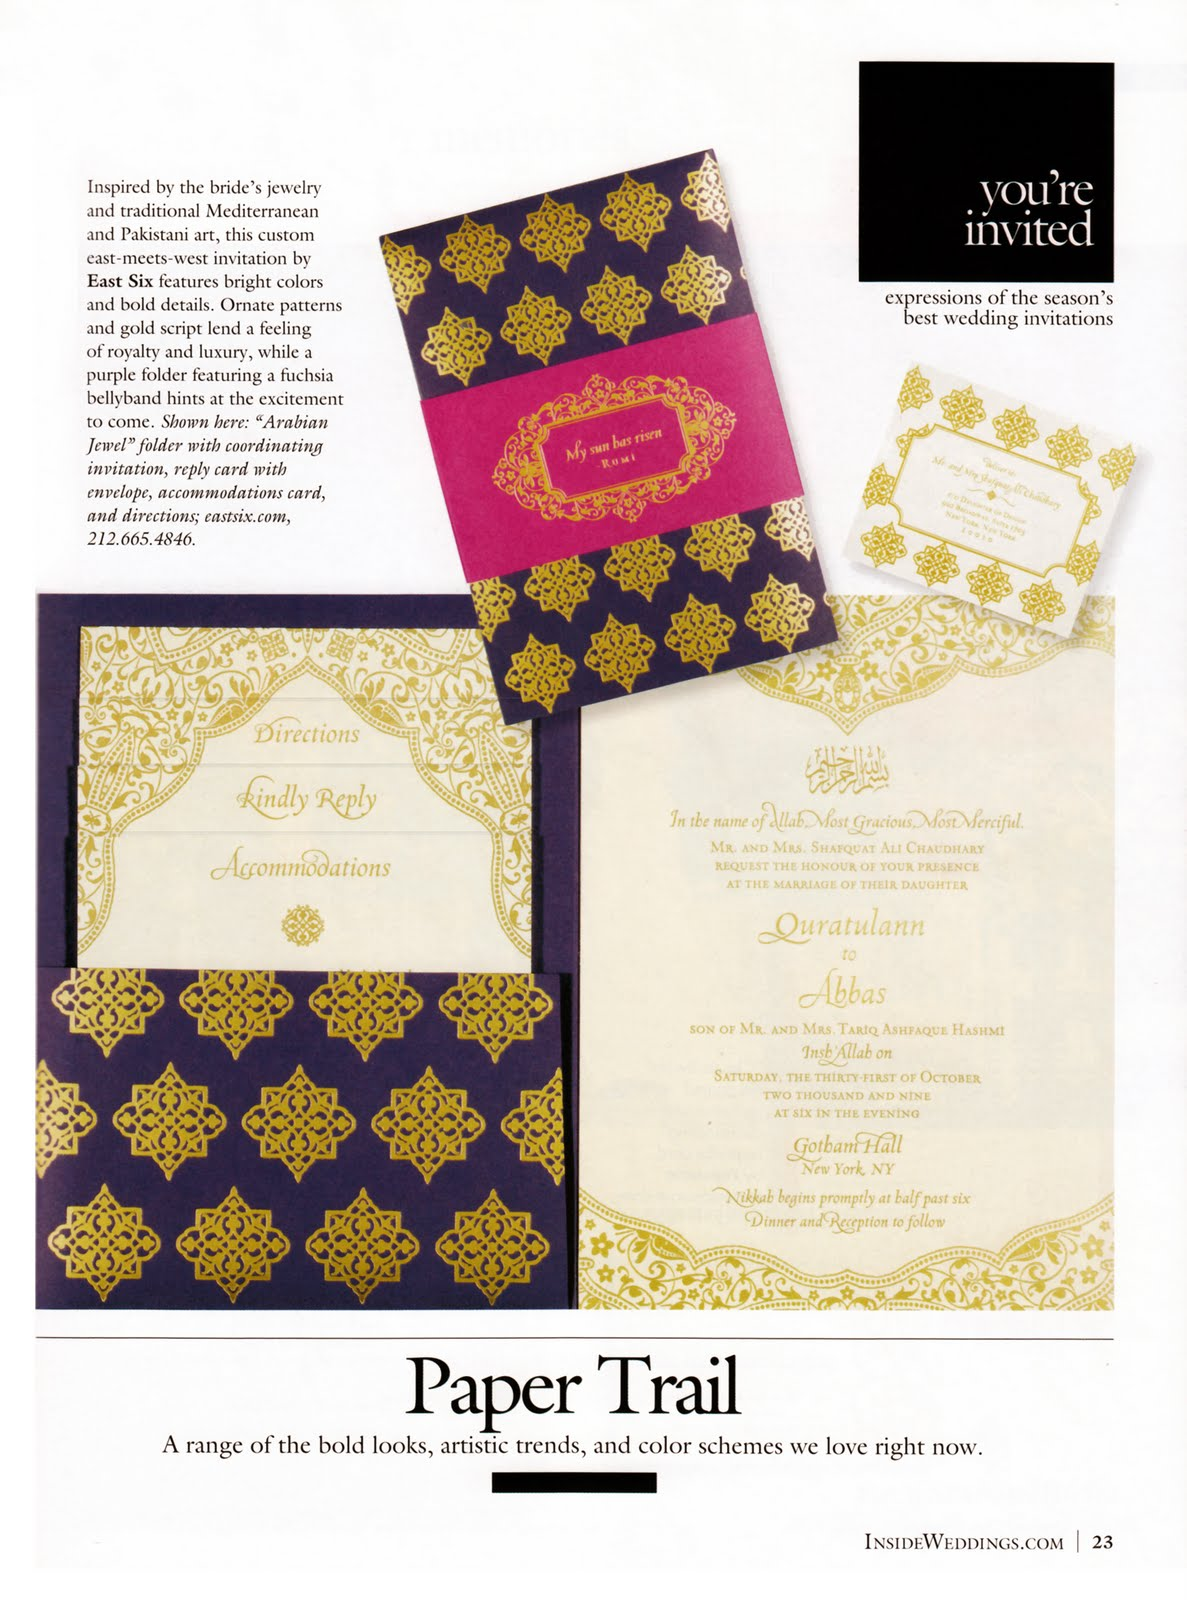 Inside Weddings: Ann + Abbas\'s wedding invitations